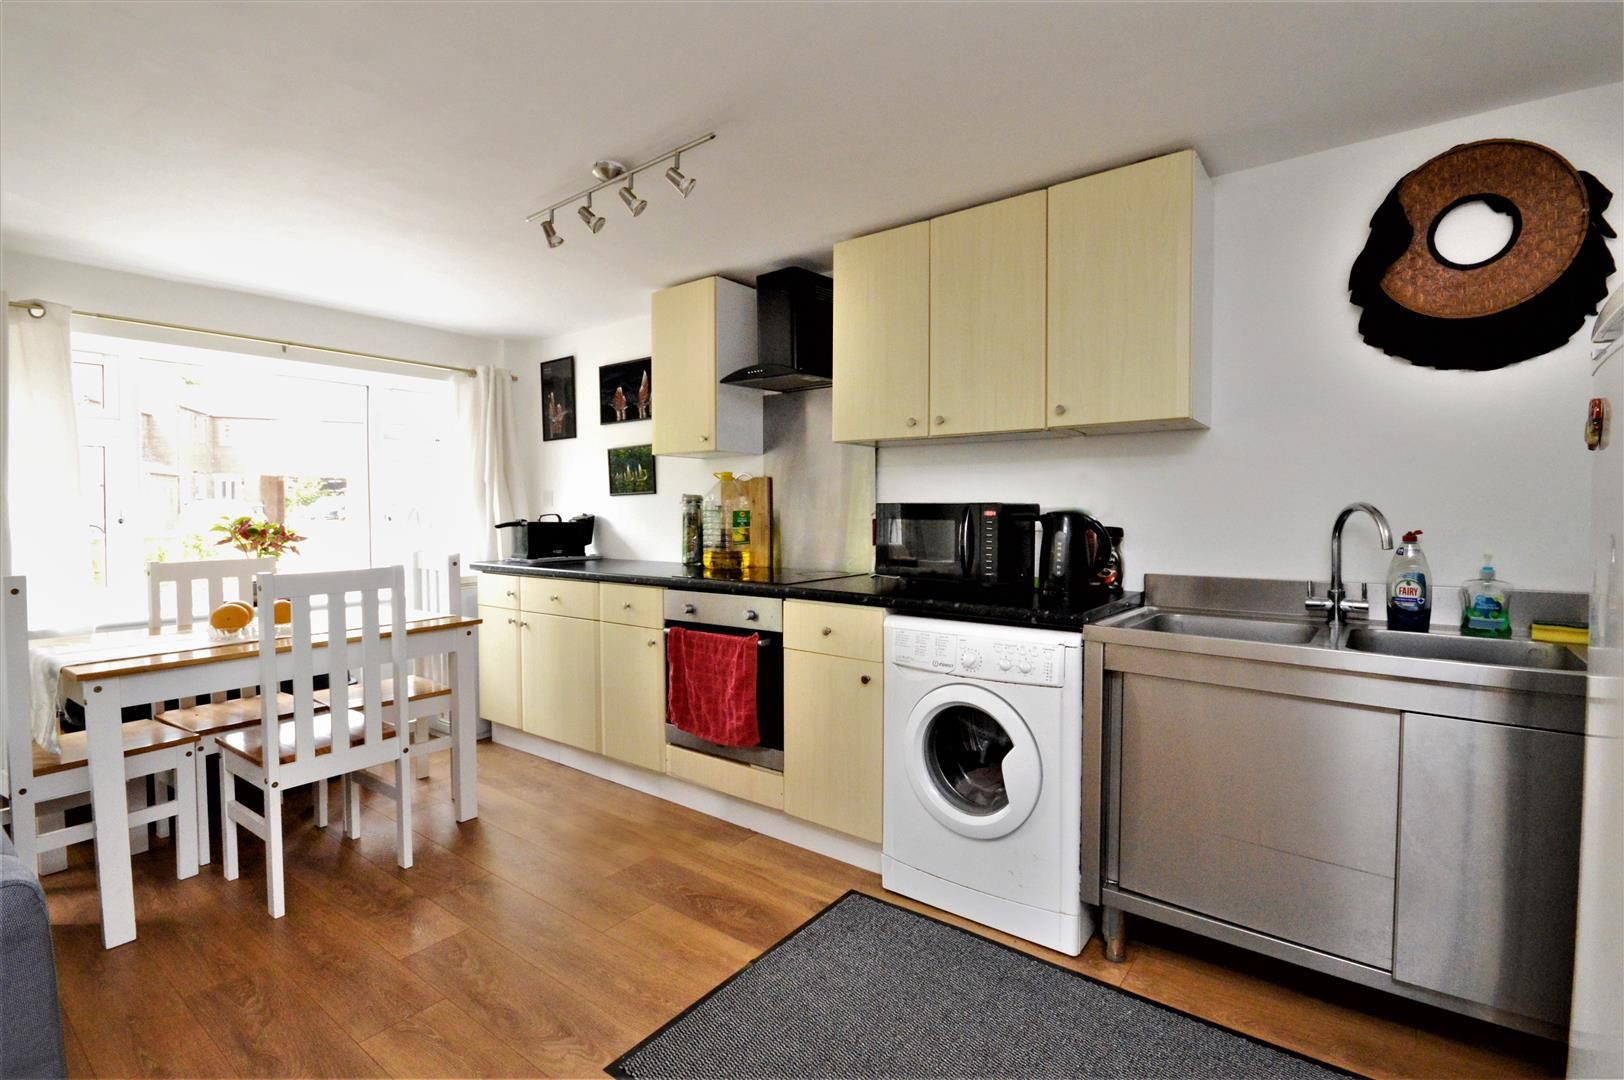 3 bed detached for sale in Belmont 3